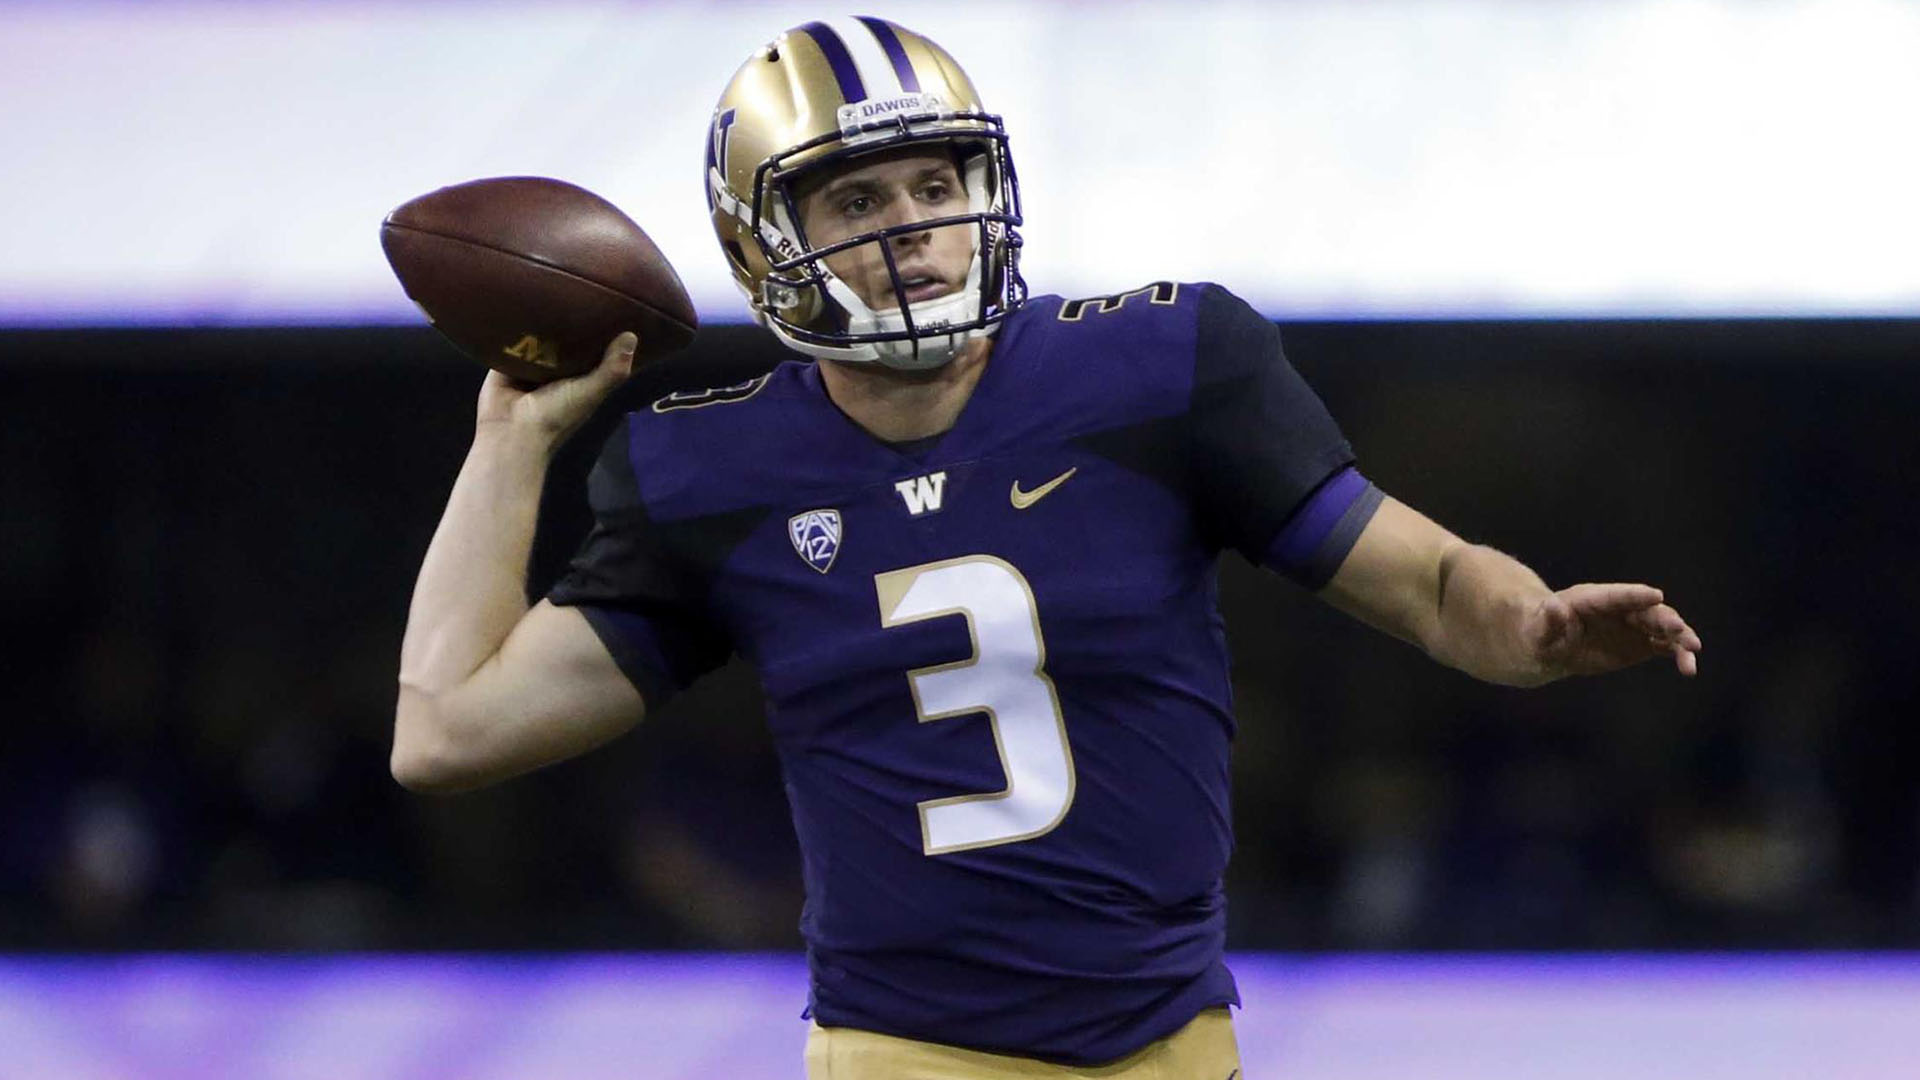 finest selection c782e b6c79 Browning Shines As No. 11 UW Routs No. 20 BYU 35-7 ...